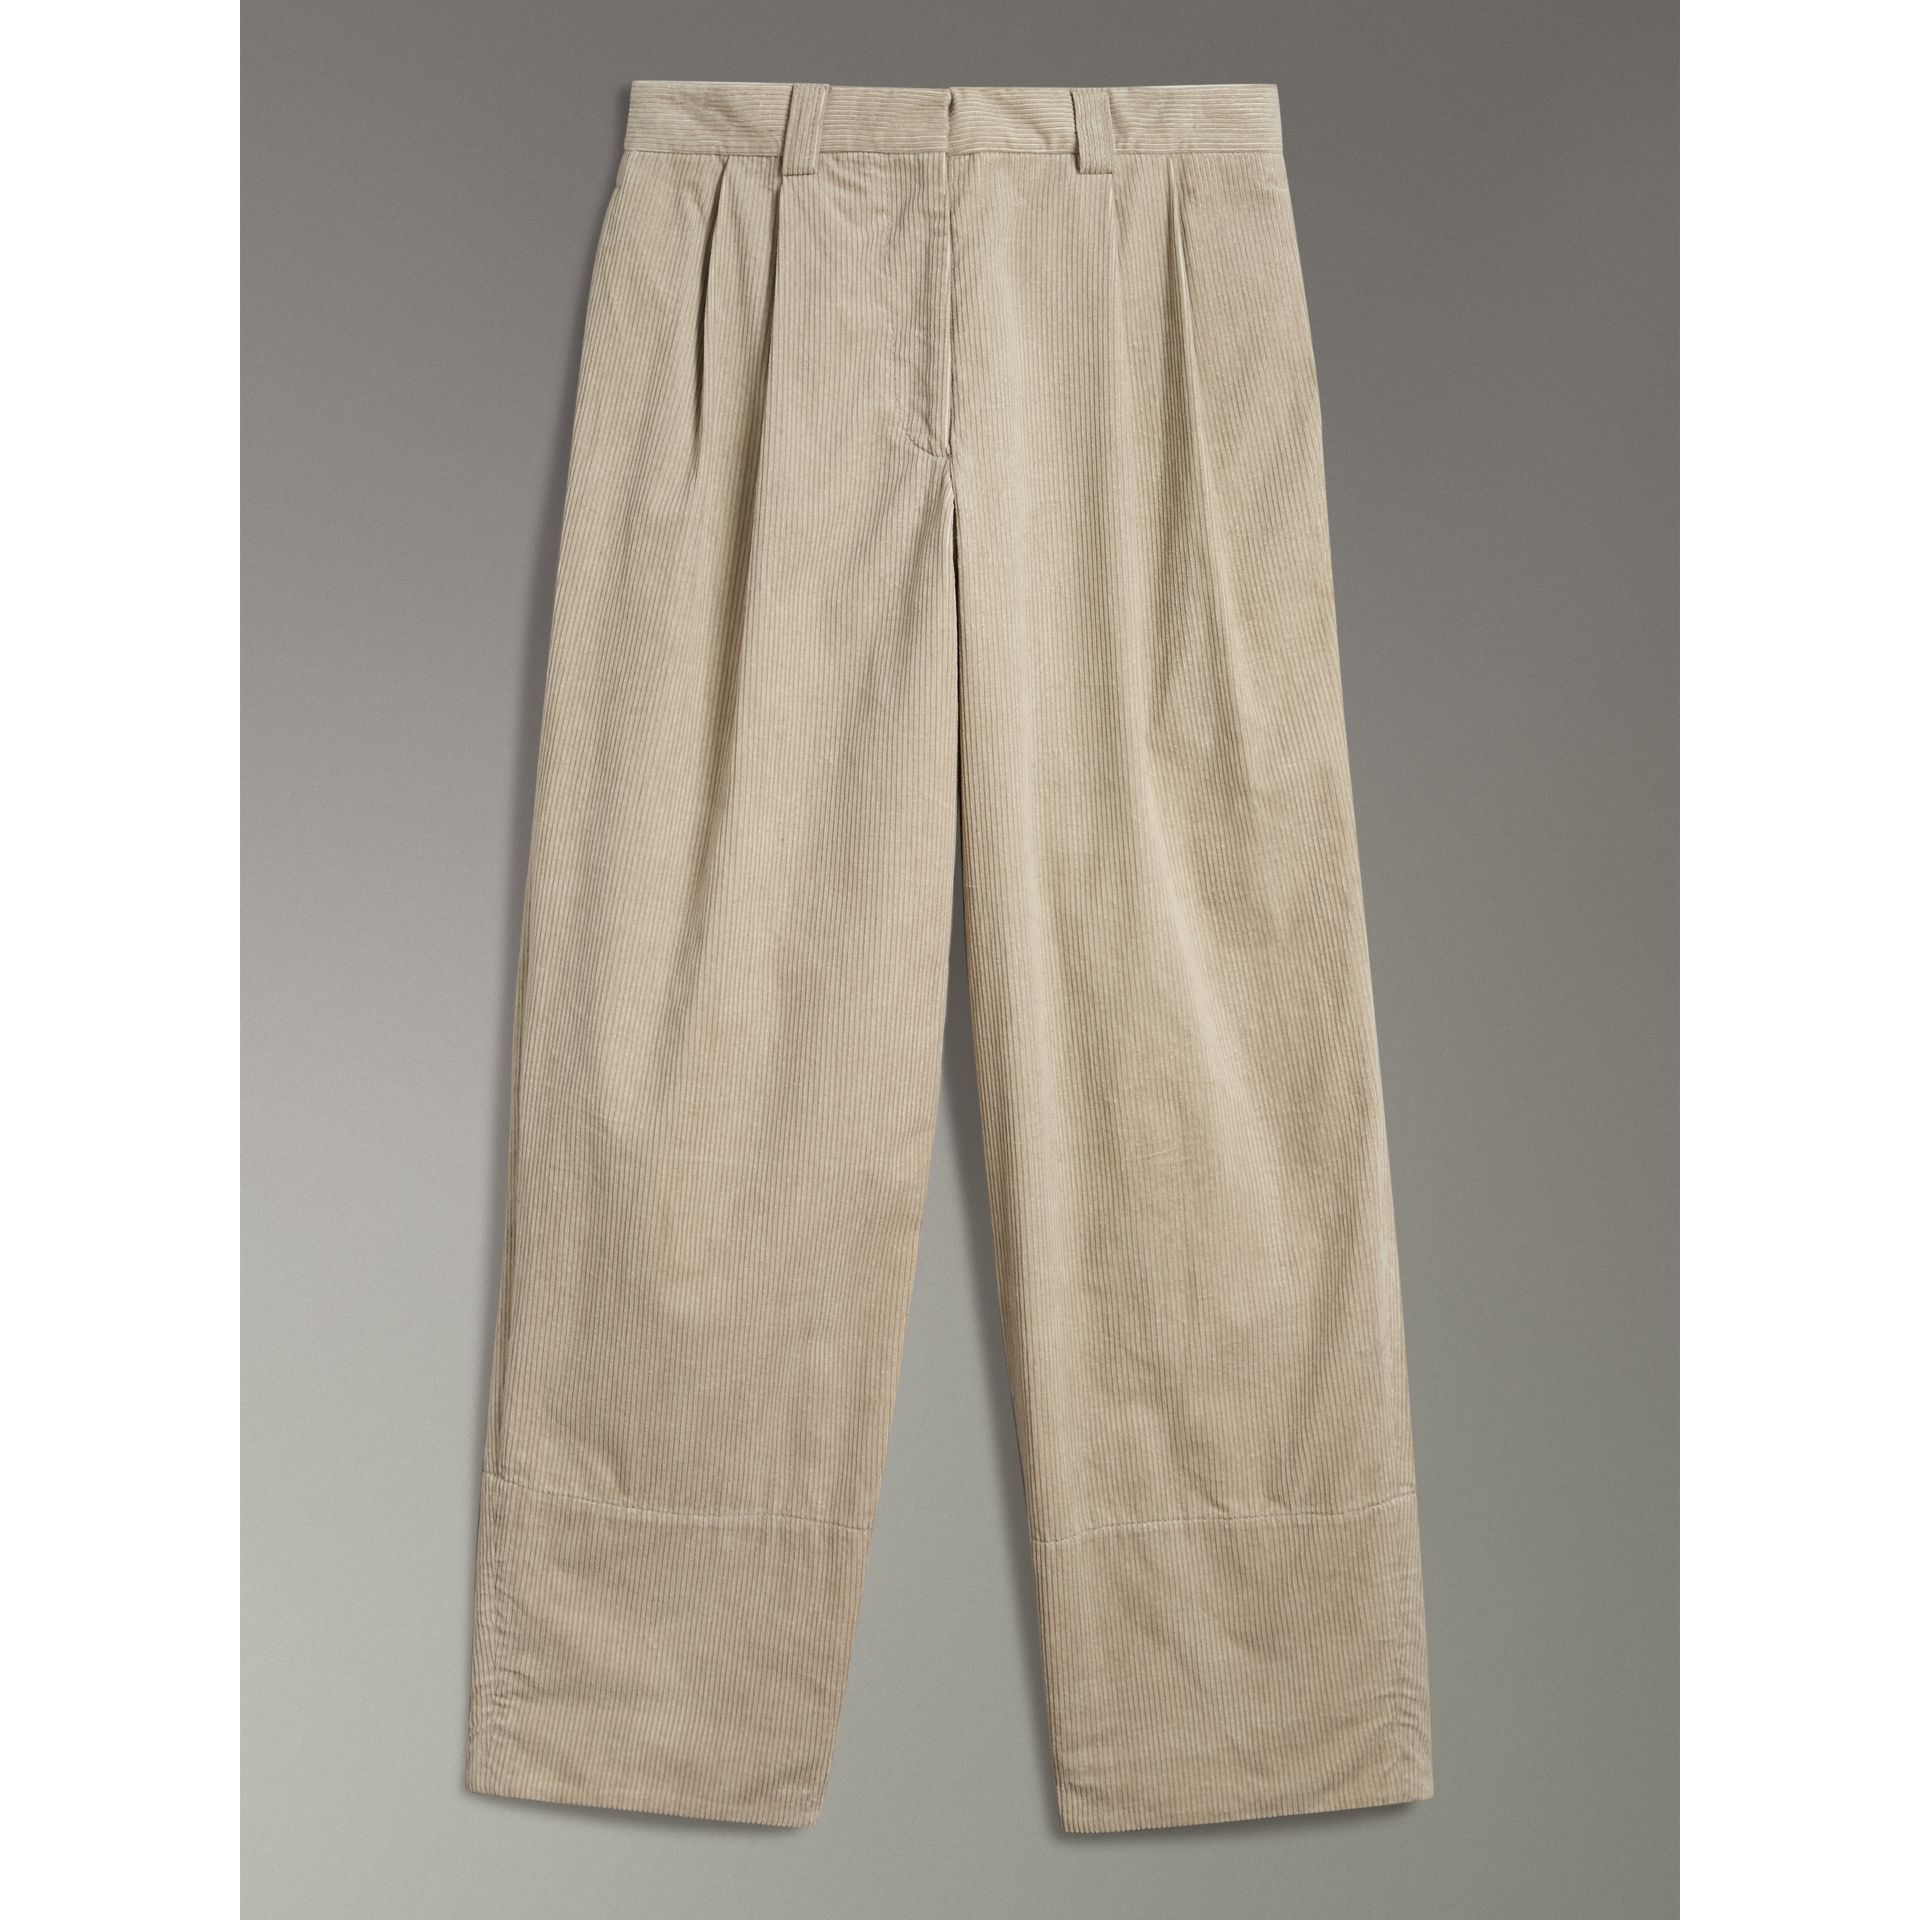 Roll-up Cuff Cotton Corduroy Trousers in Stone - Women | Burberry - gallery image 3